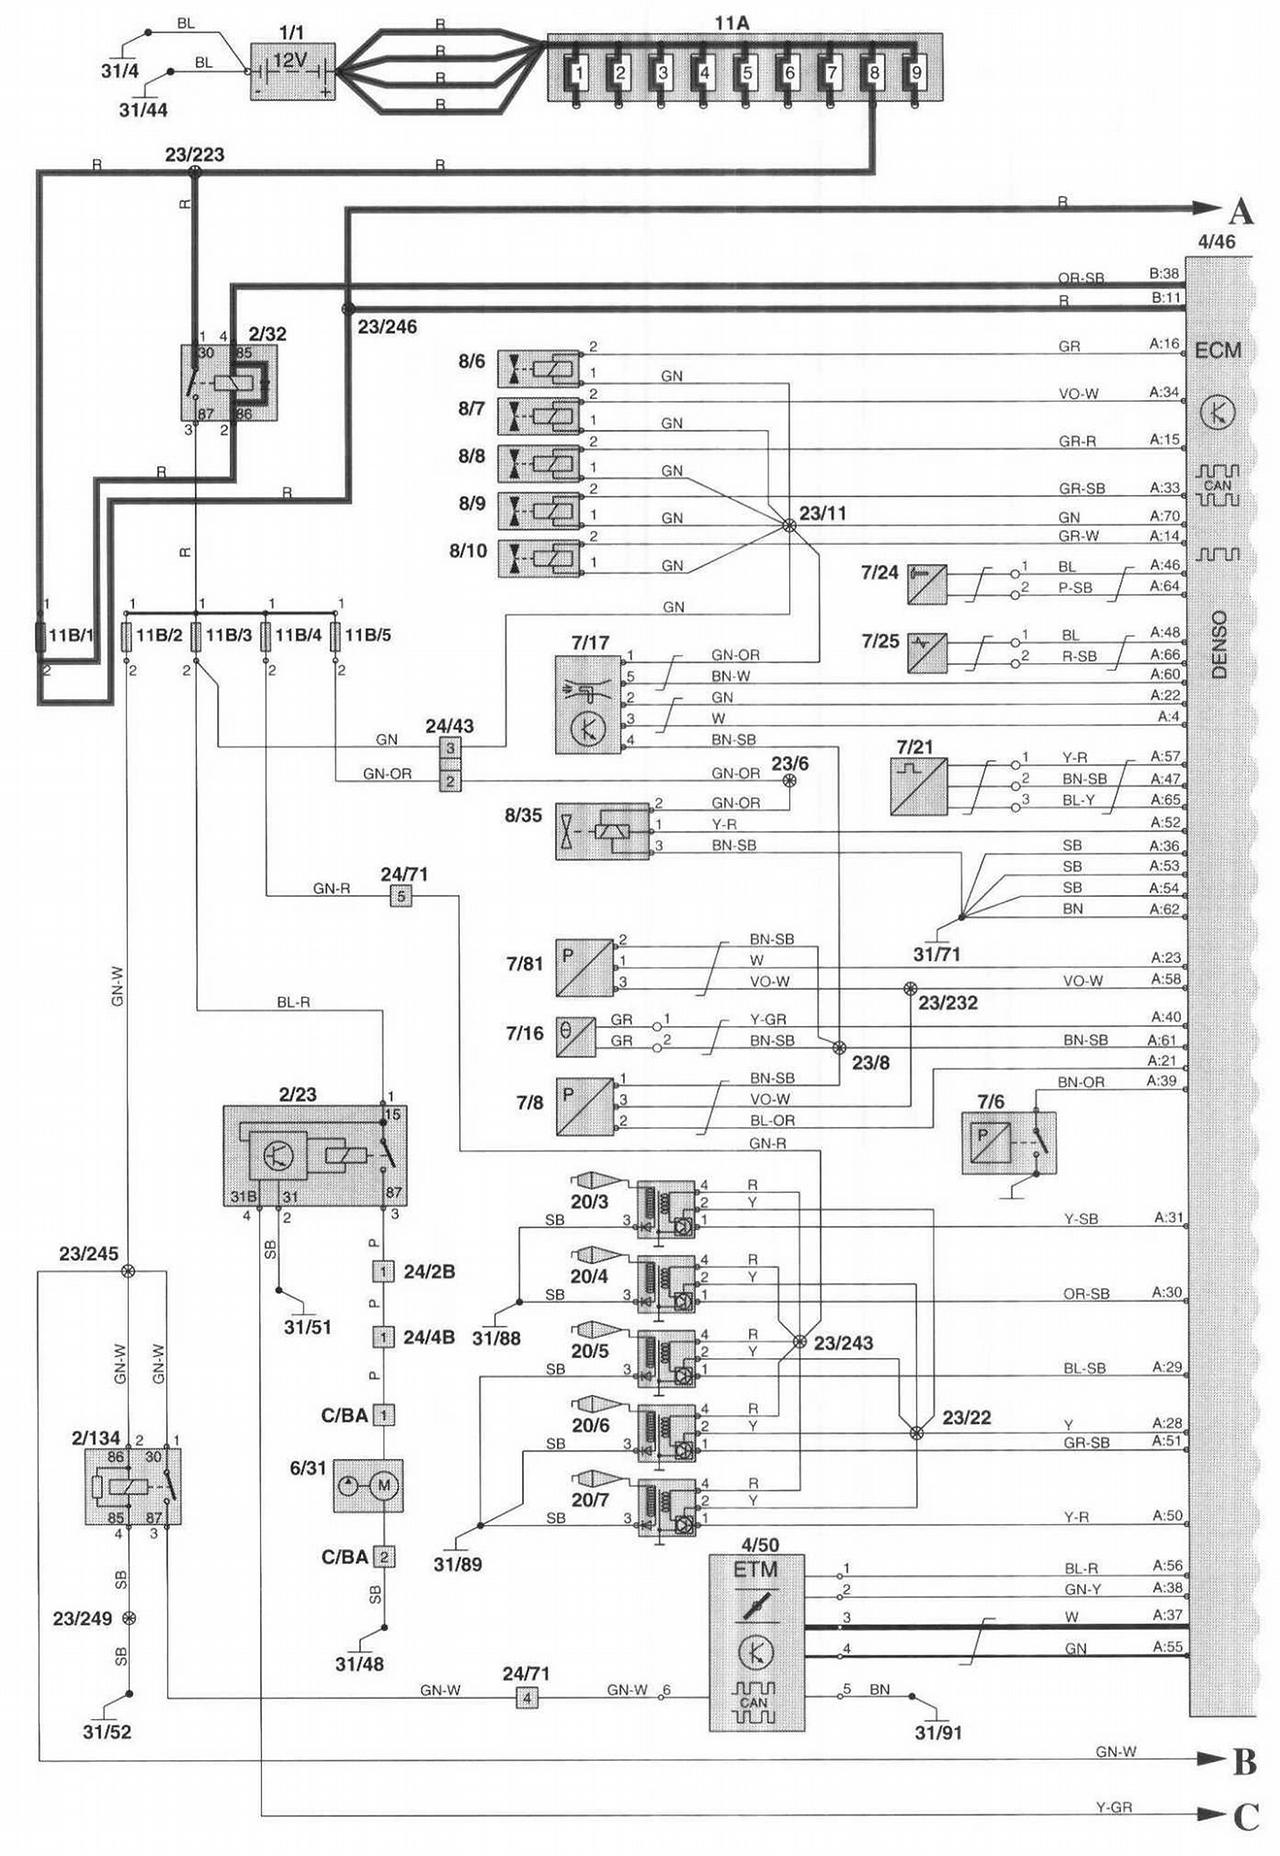 Volvo Pentum Md7a Wiring Diagram